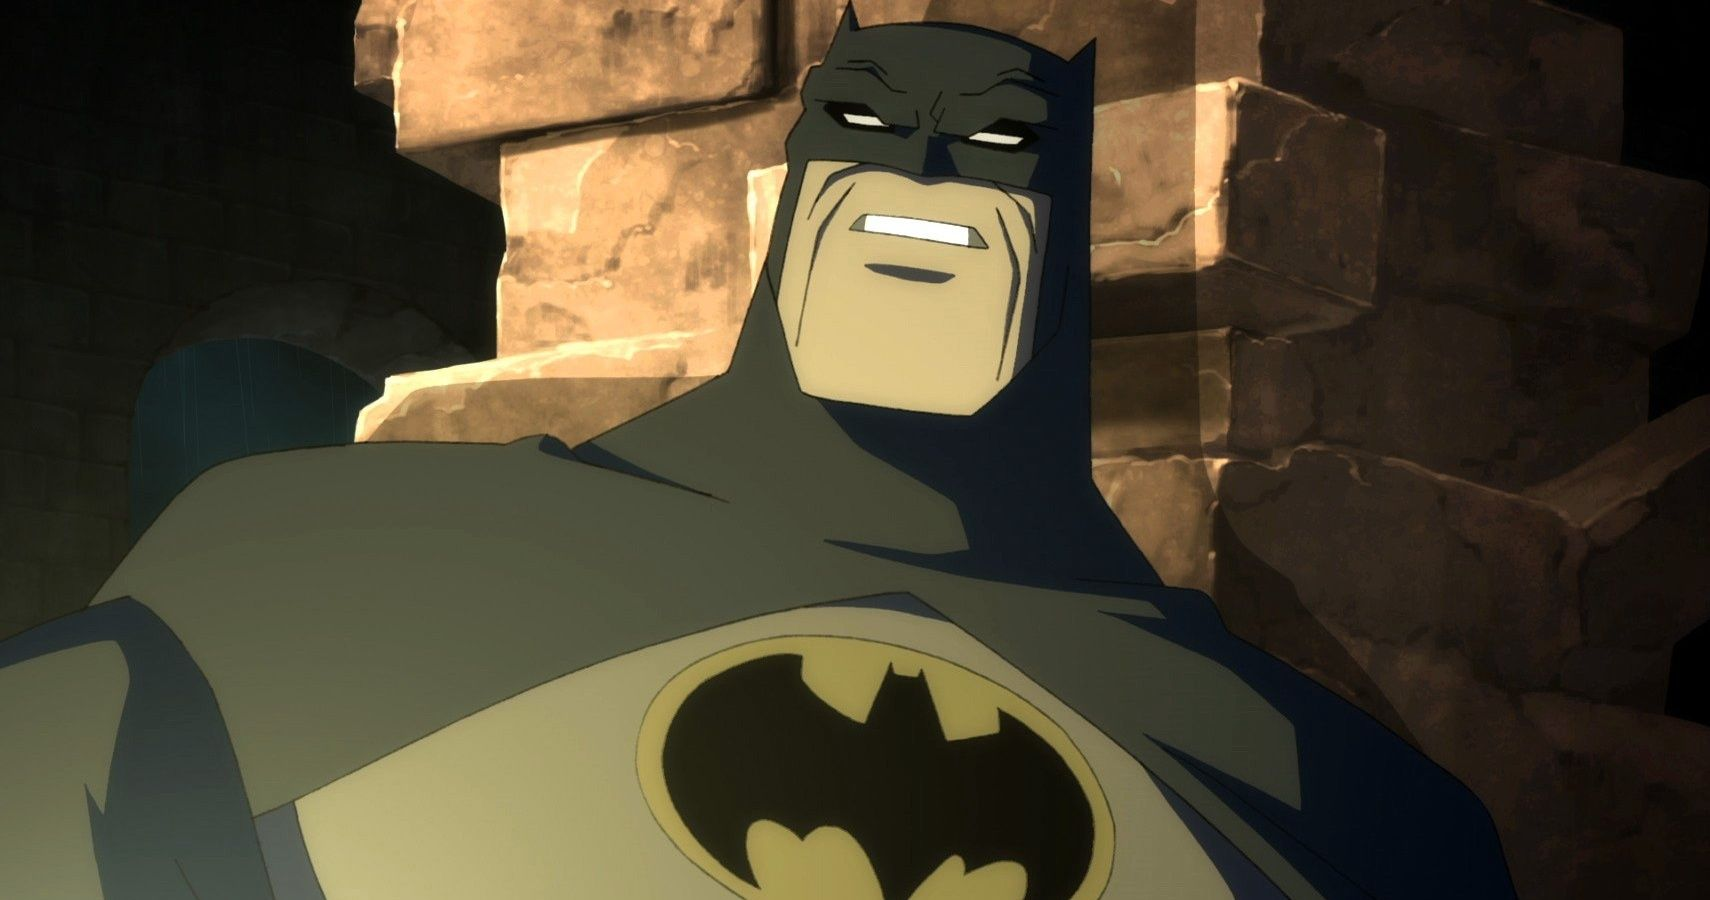 Batman 5 Reasons The Dark Knight Returns 1 2 Are The Best Animated Movies 5 Why Under The Red Hood Is